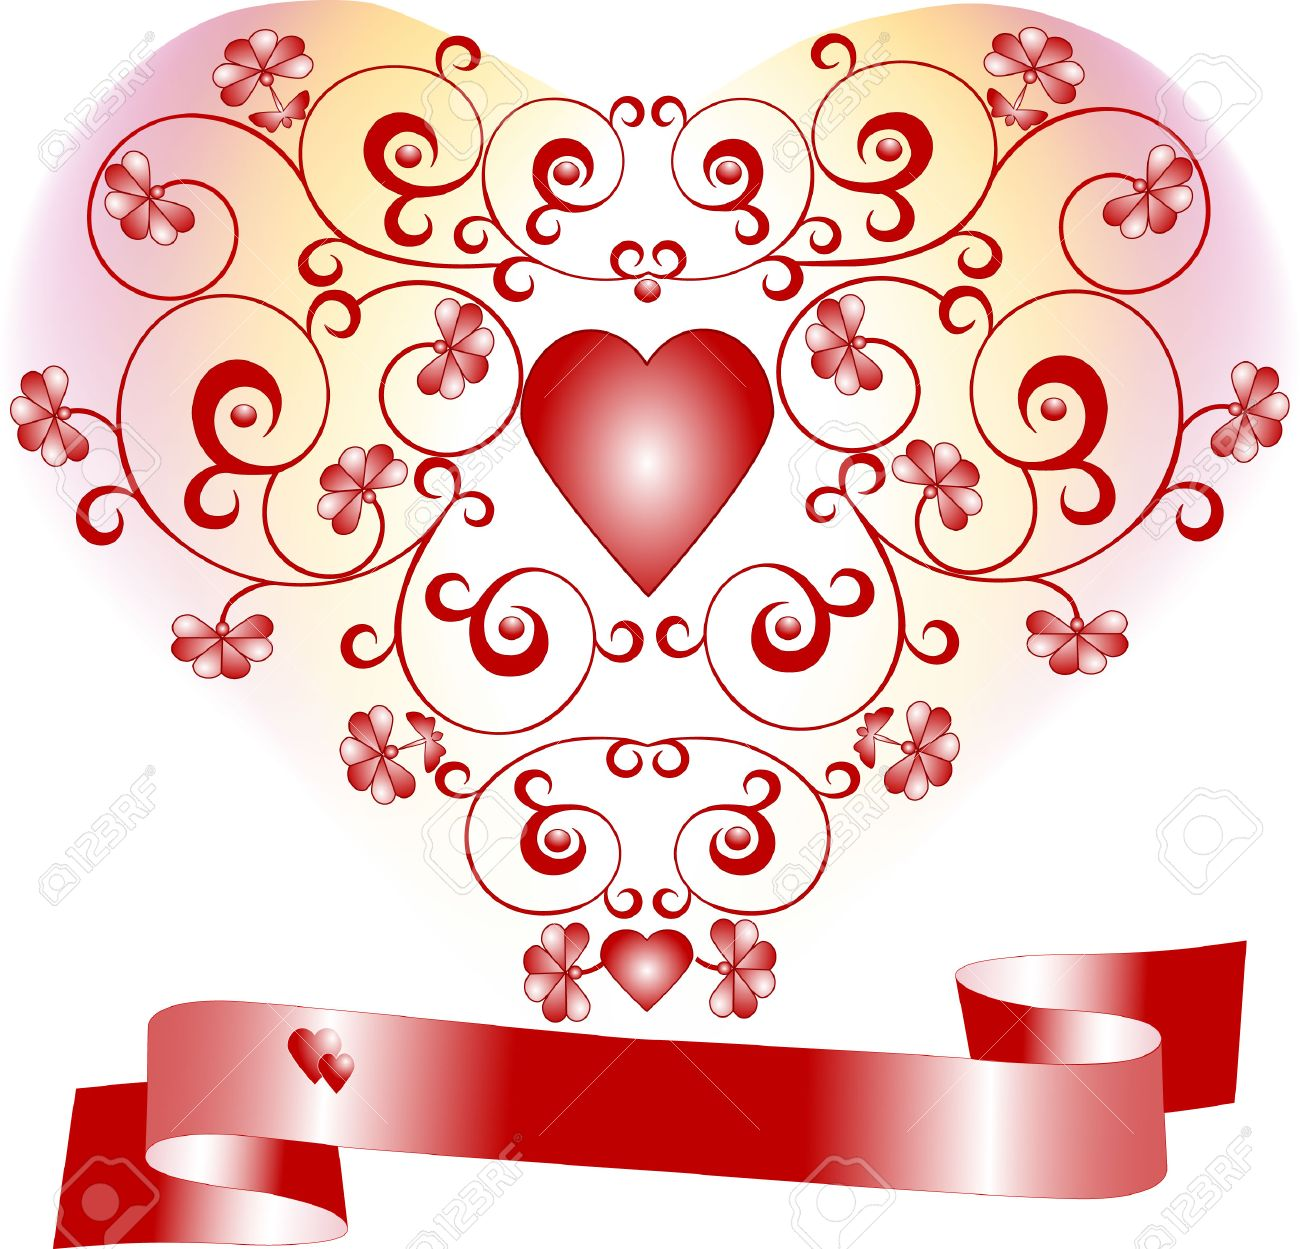 Heart on a background with flowers declaration of love. Postcard, Background . Stock Vector - 7059353